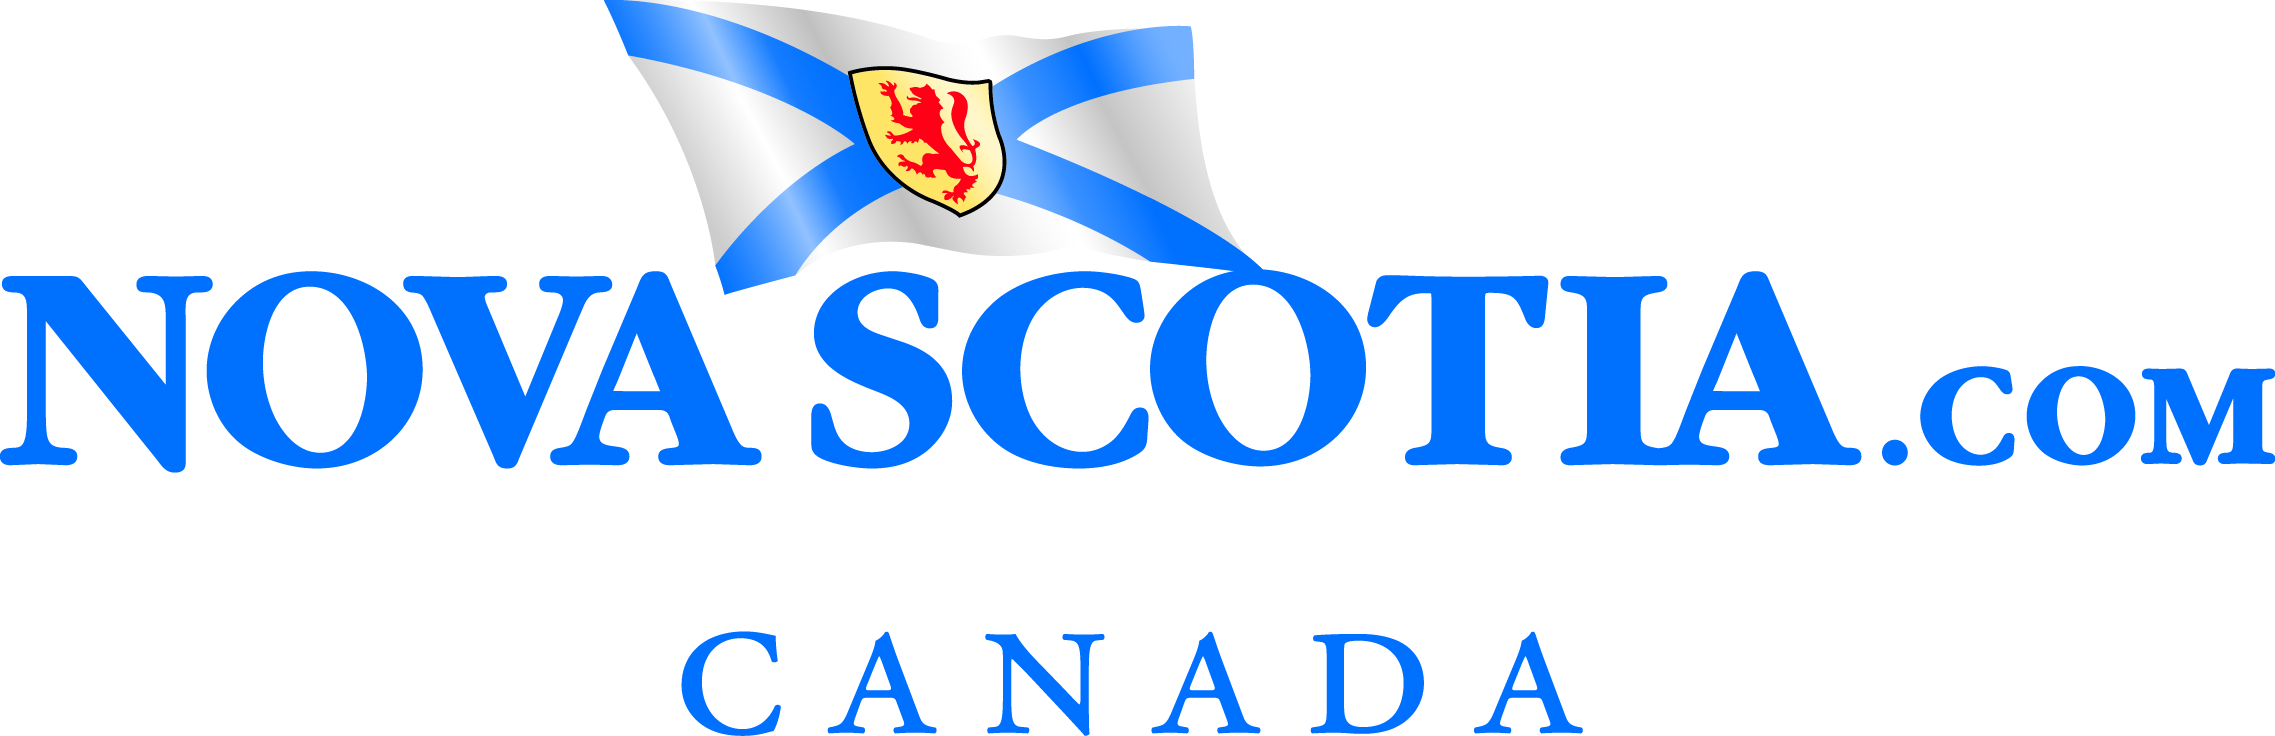 Nova Scotia Canada dot comCMYK.jpg